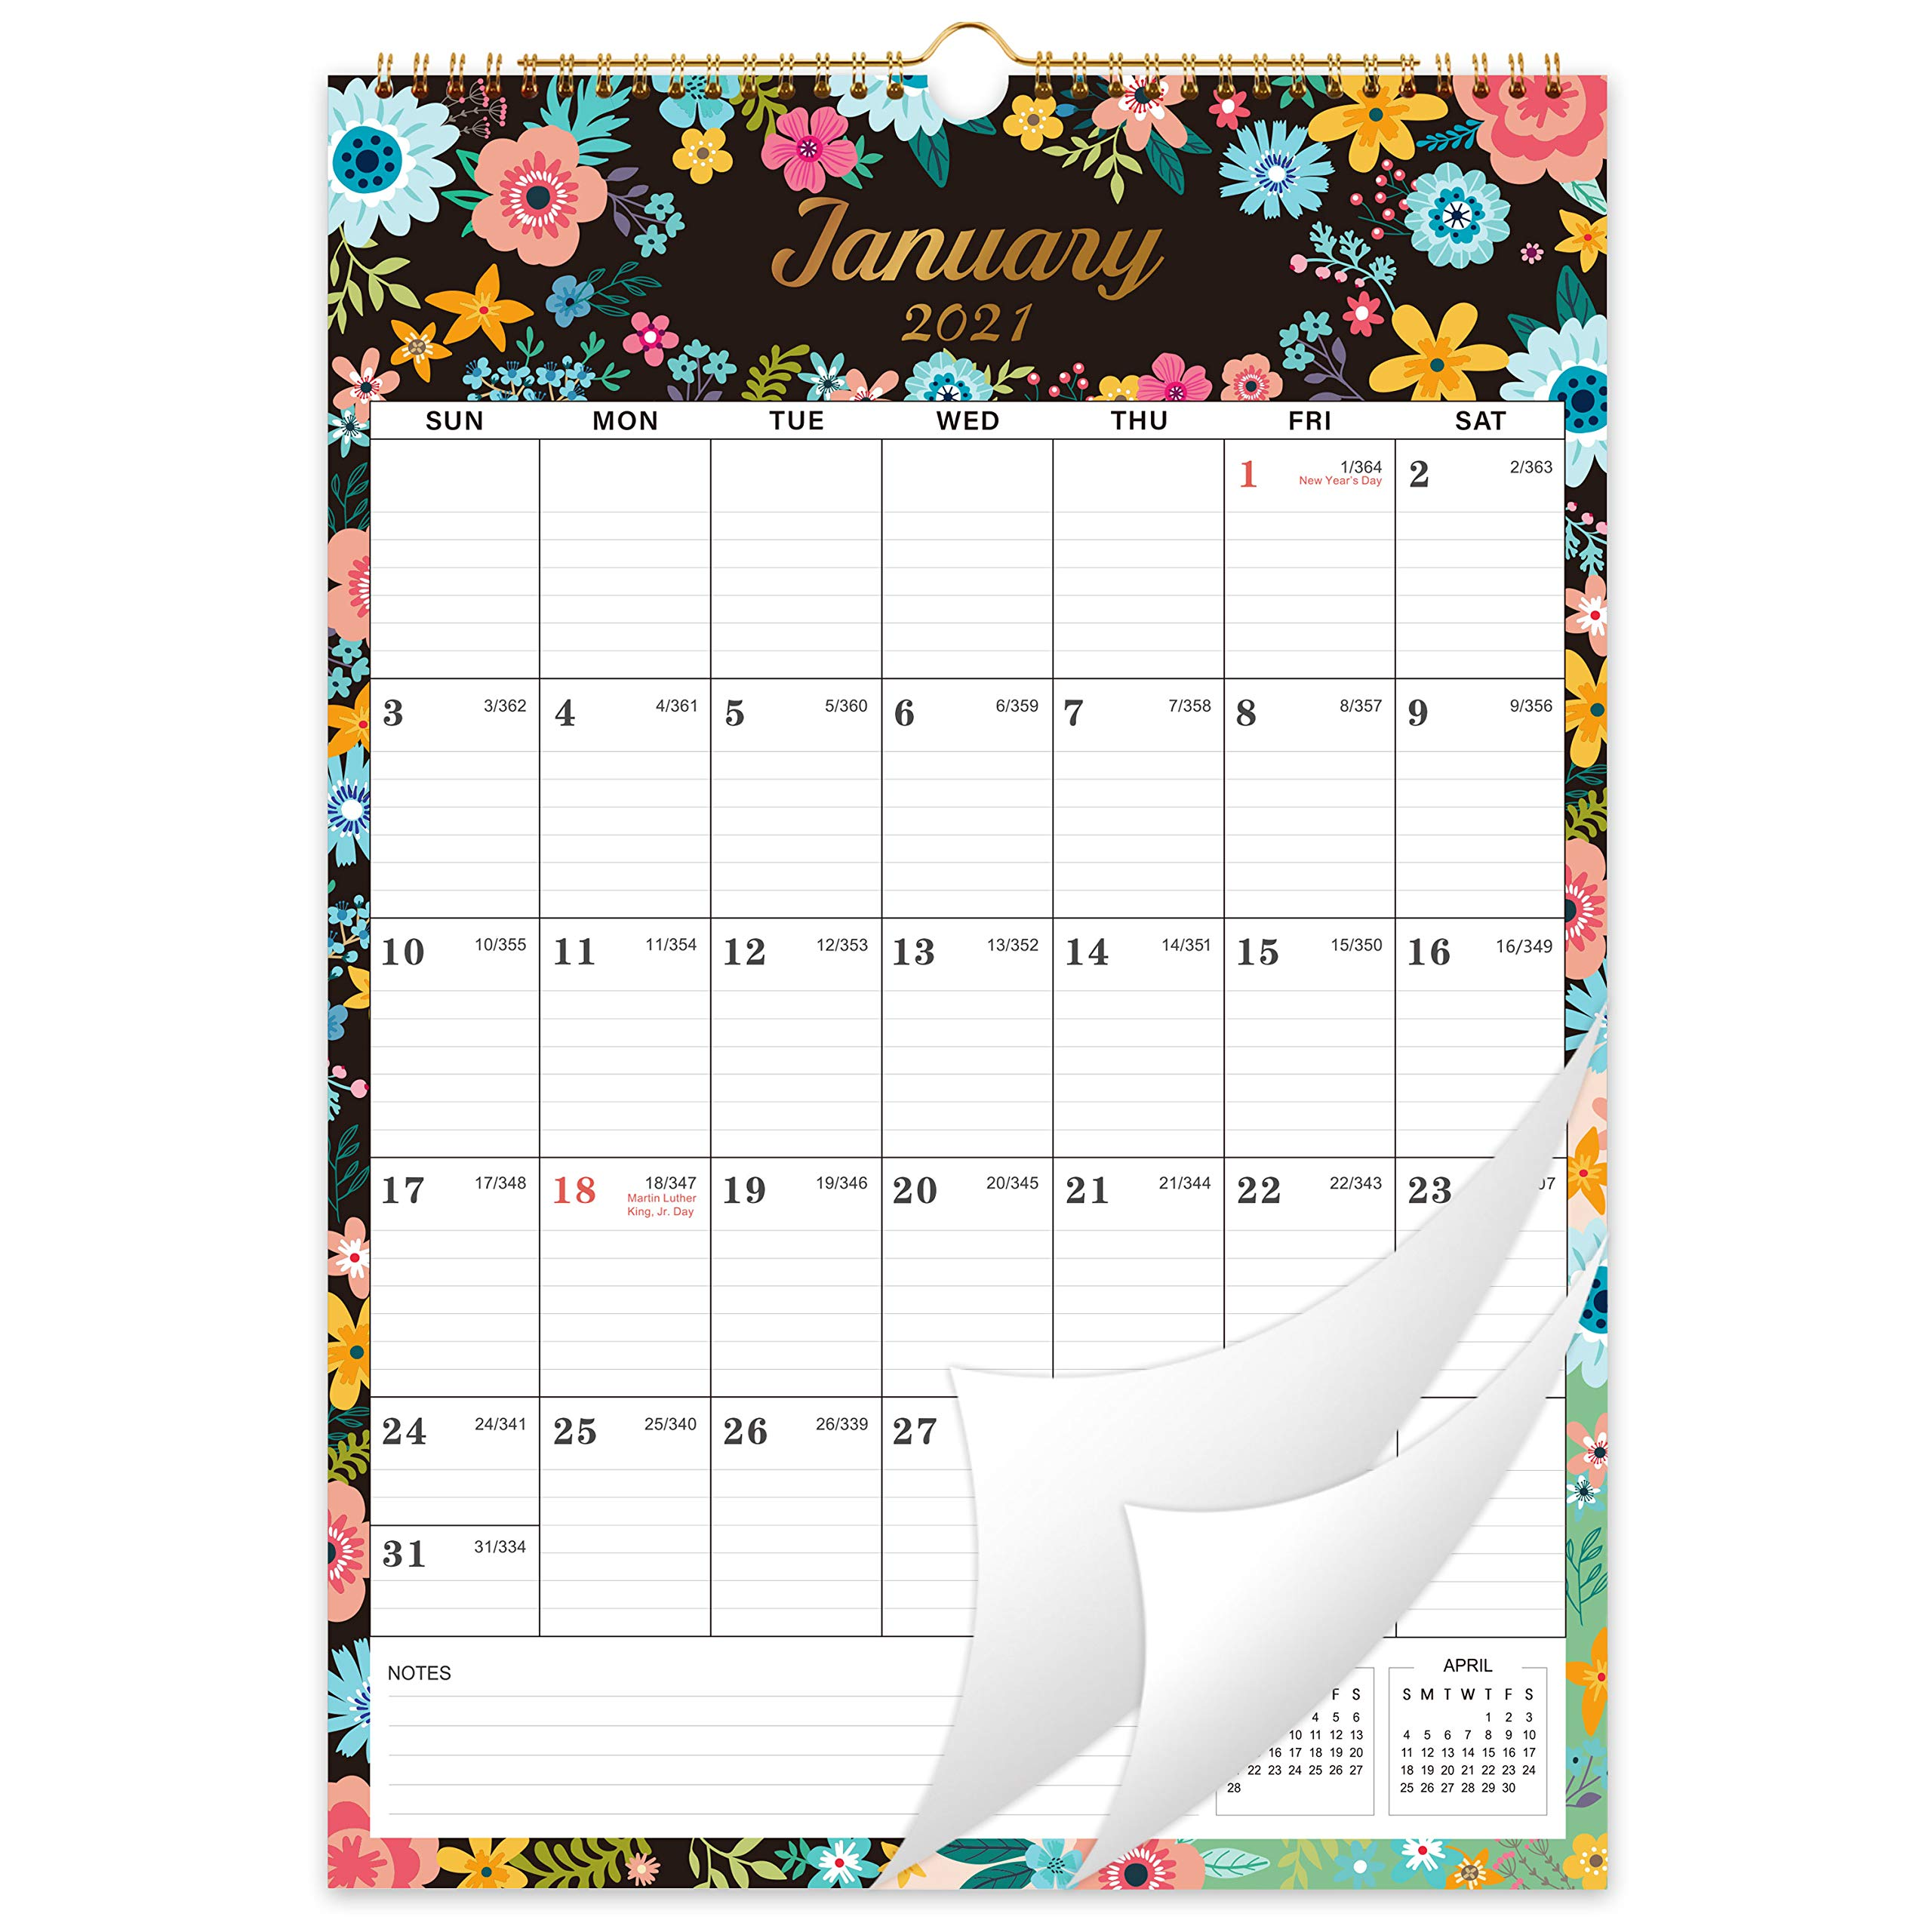 """2021-2022 Calendar - 18 Monthly Wall Calendar with Thick Paper, Jan 2021 - Jun 2022, 12"""" x 17"""", Large Blocks with Julian Dates, Twin-Wire Binding, Hanging Hook, Perfect for Planning for Home or Office"""